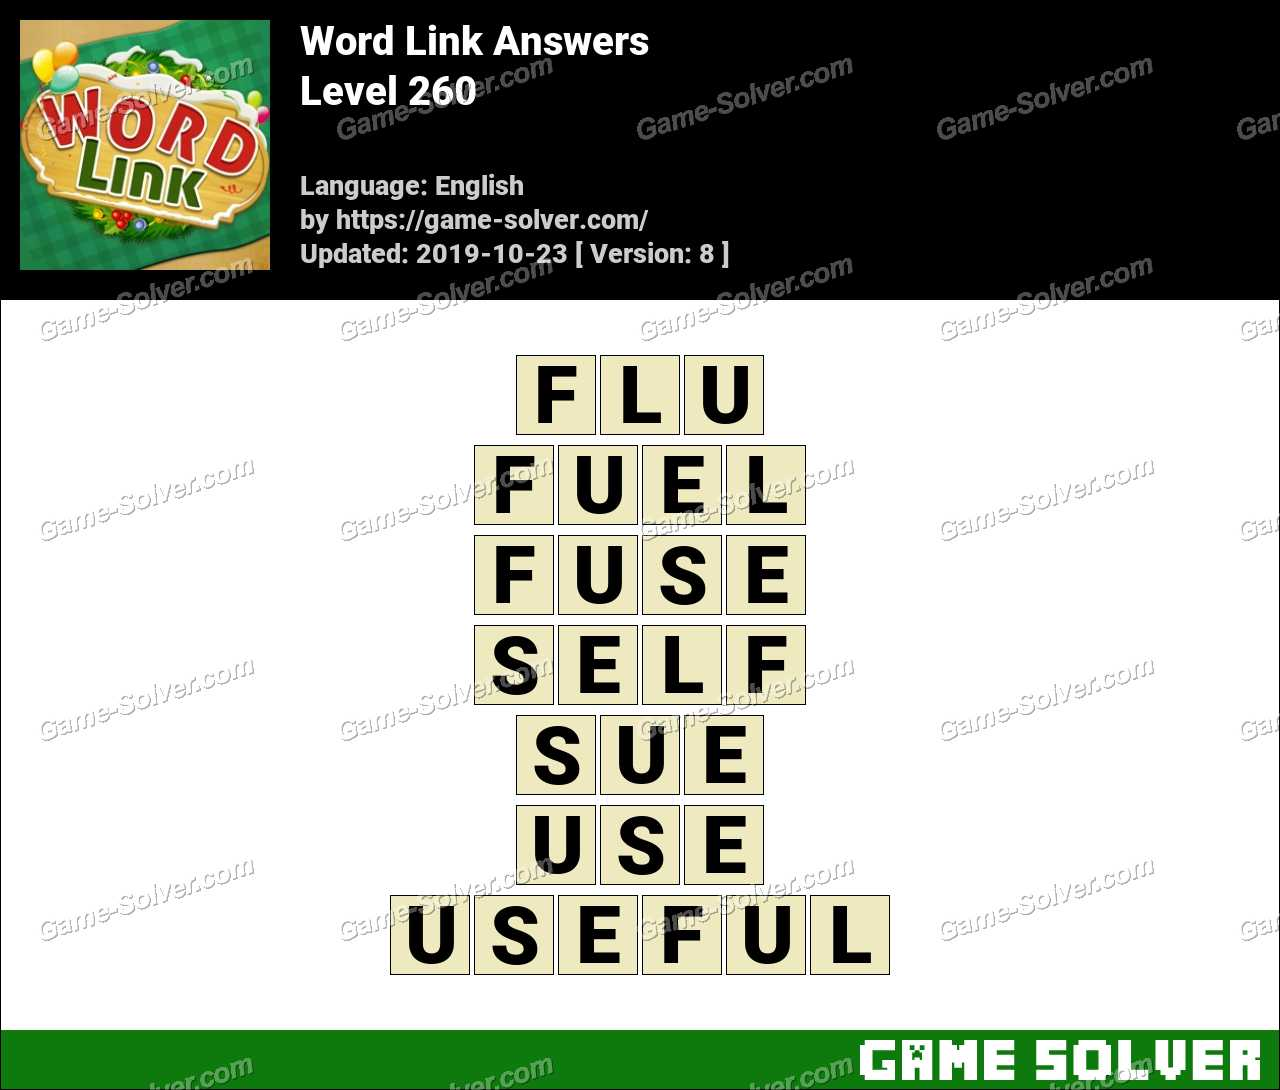 Word Link Level 260 Answers